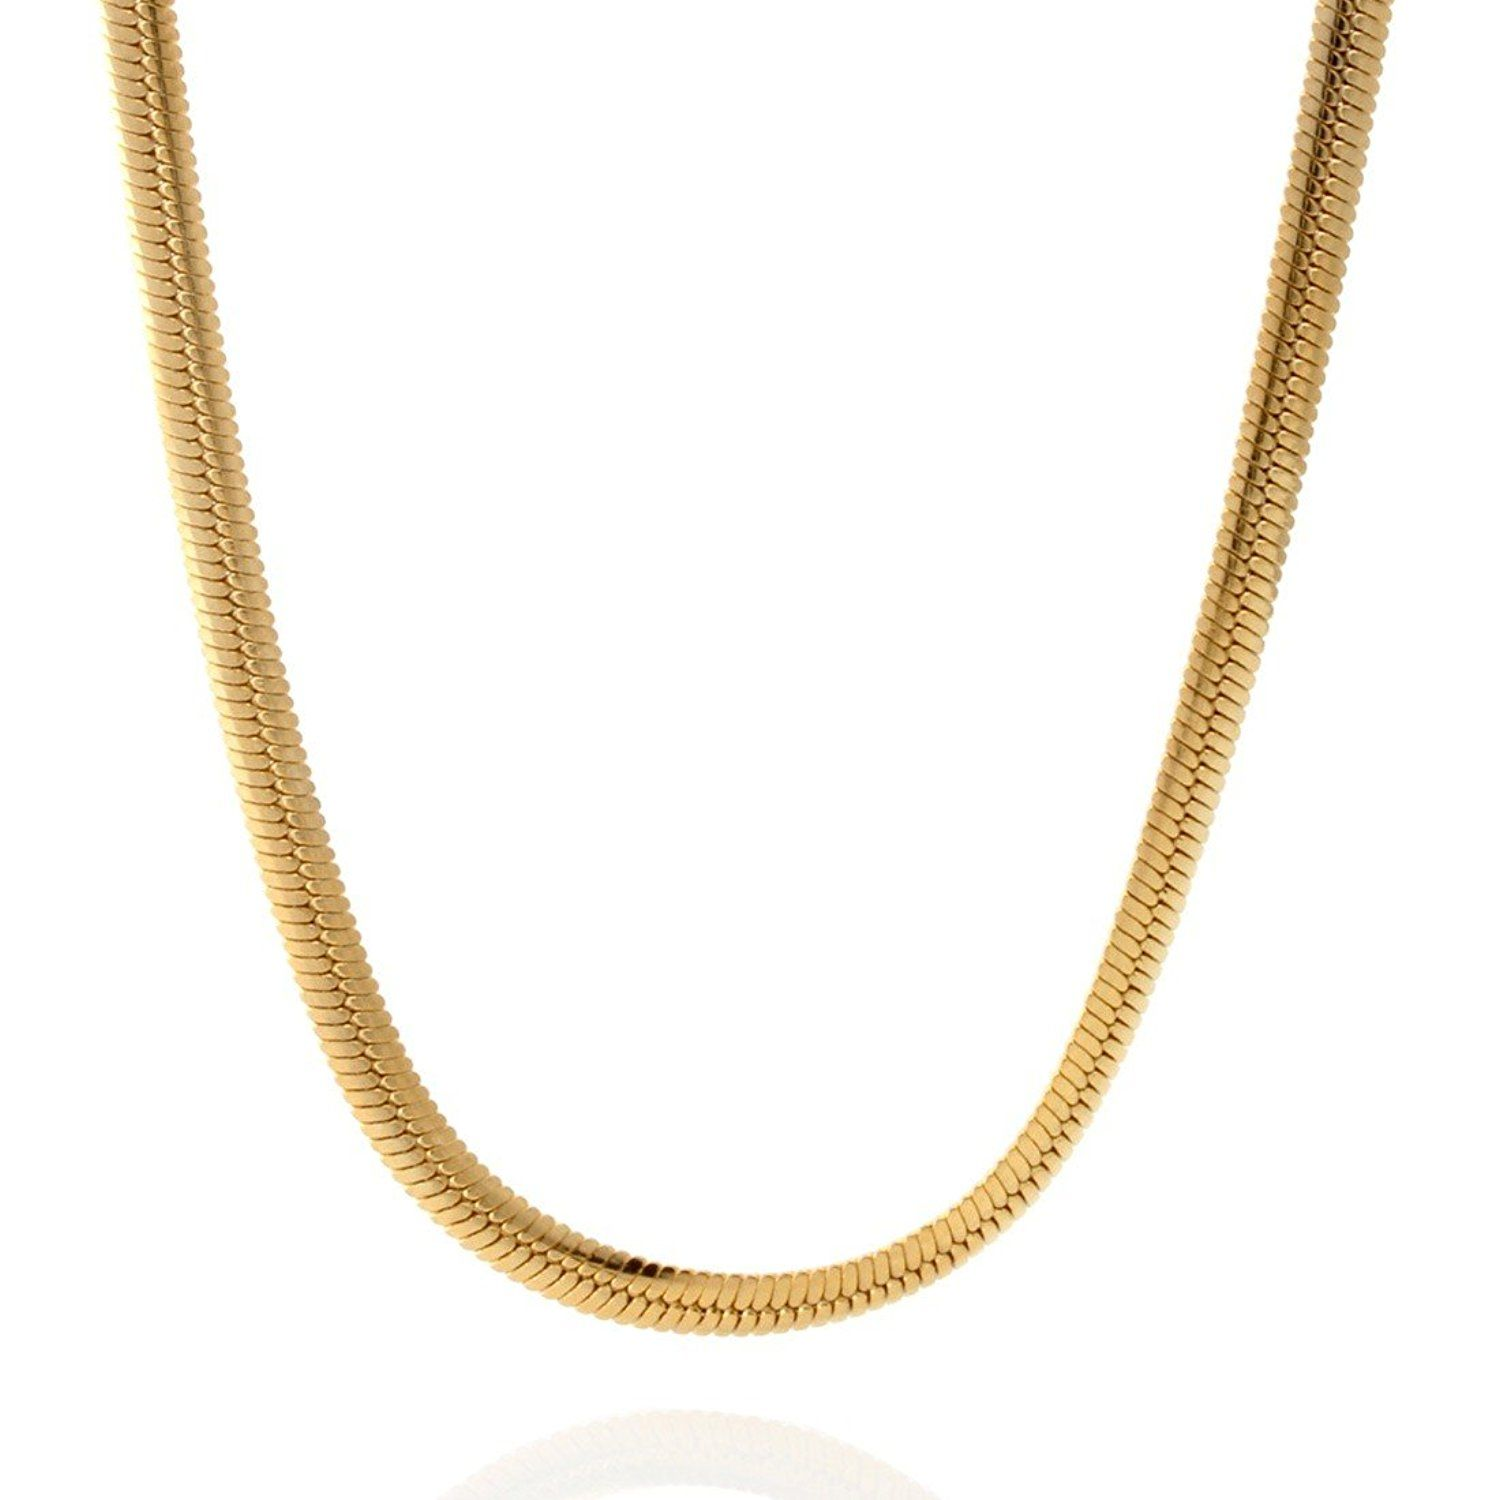 4mm Thick 18k Gold Plated On Solid Sterling Silver 925 Italian Herringbone Chain Necklace Bracelet Anklet With Lo Gold Herringbone Chain Chains For Men Jewelry